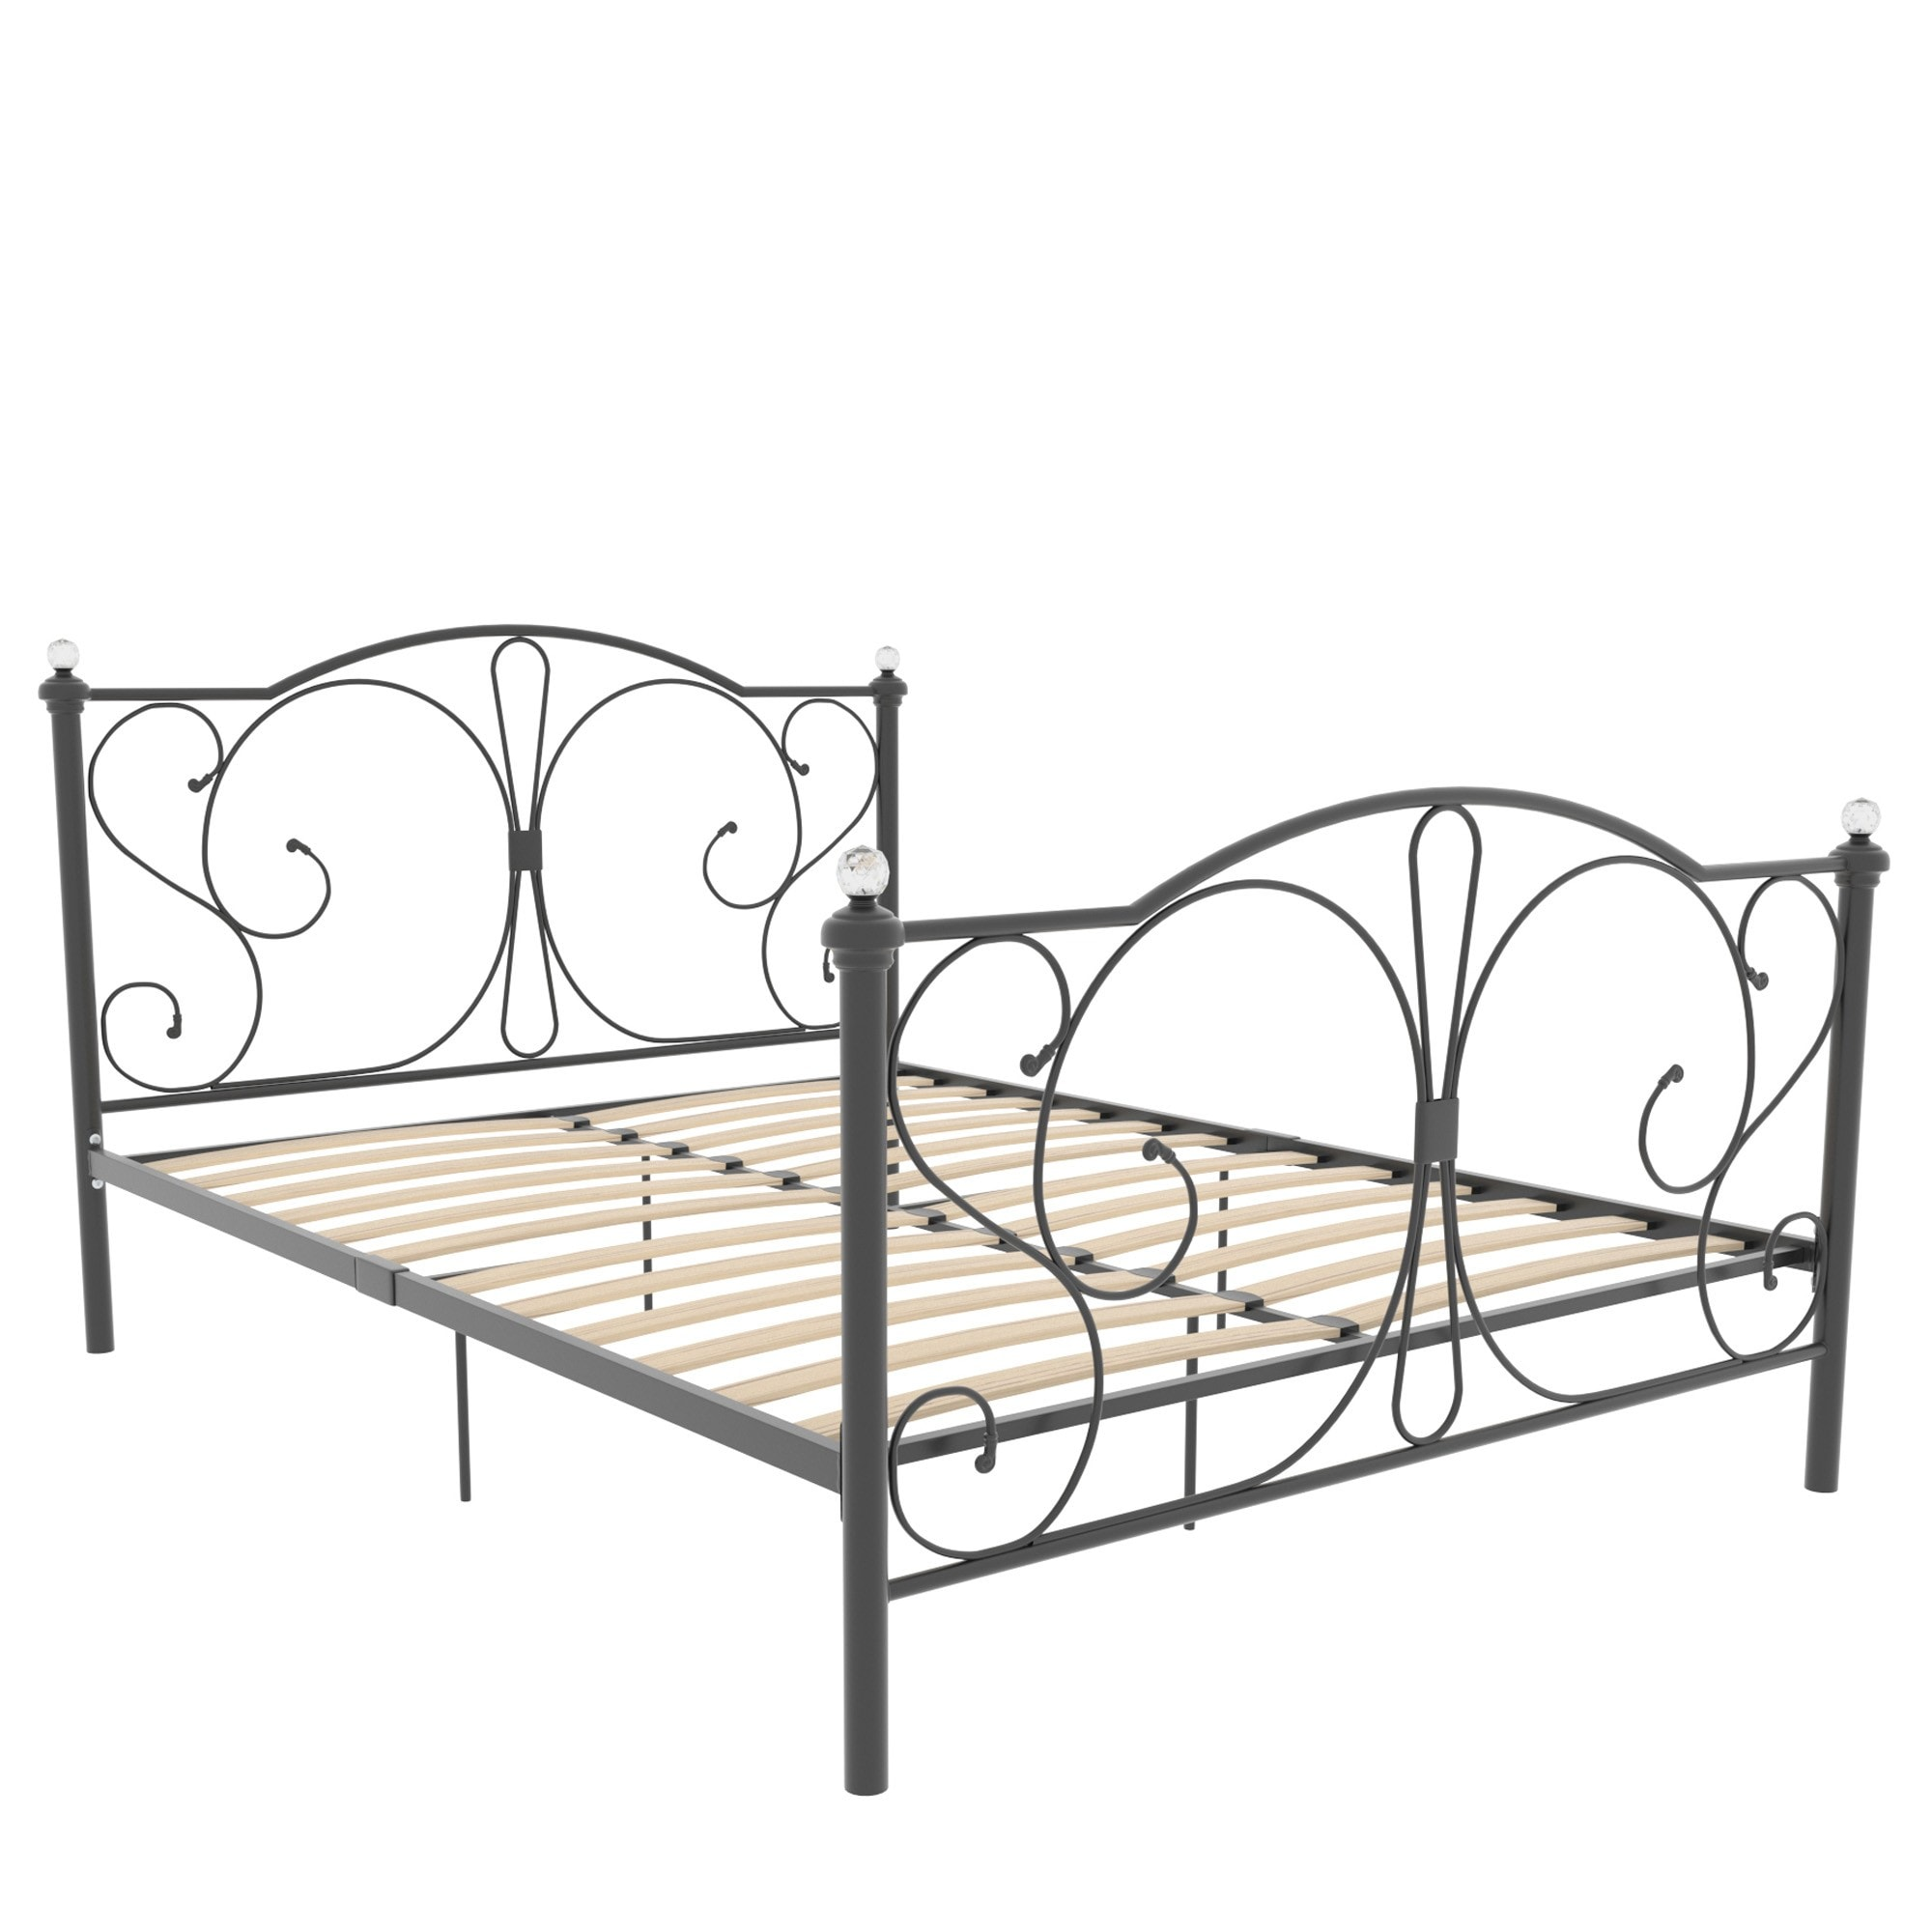 Barcelona King Size Metal Bed Bedroom Furniture Modern Beds